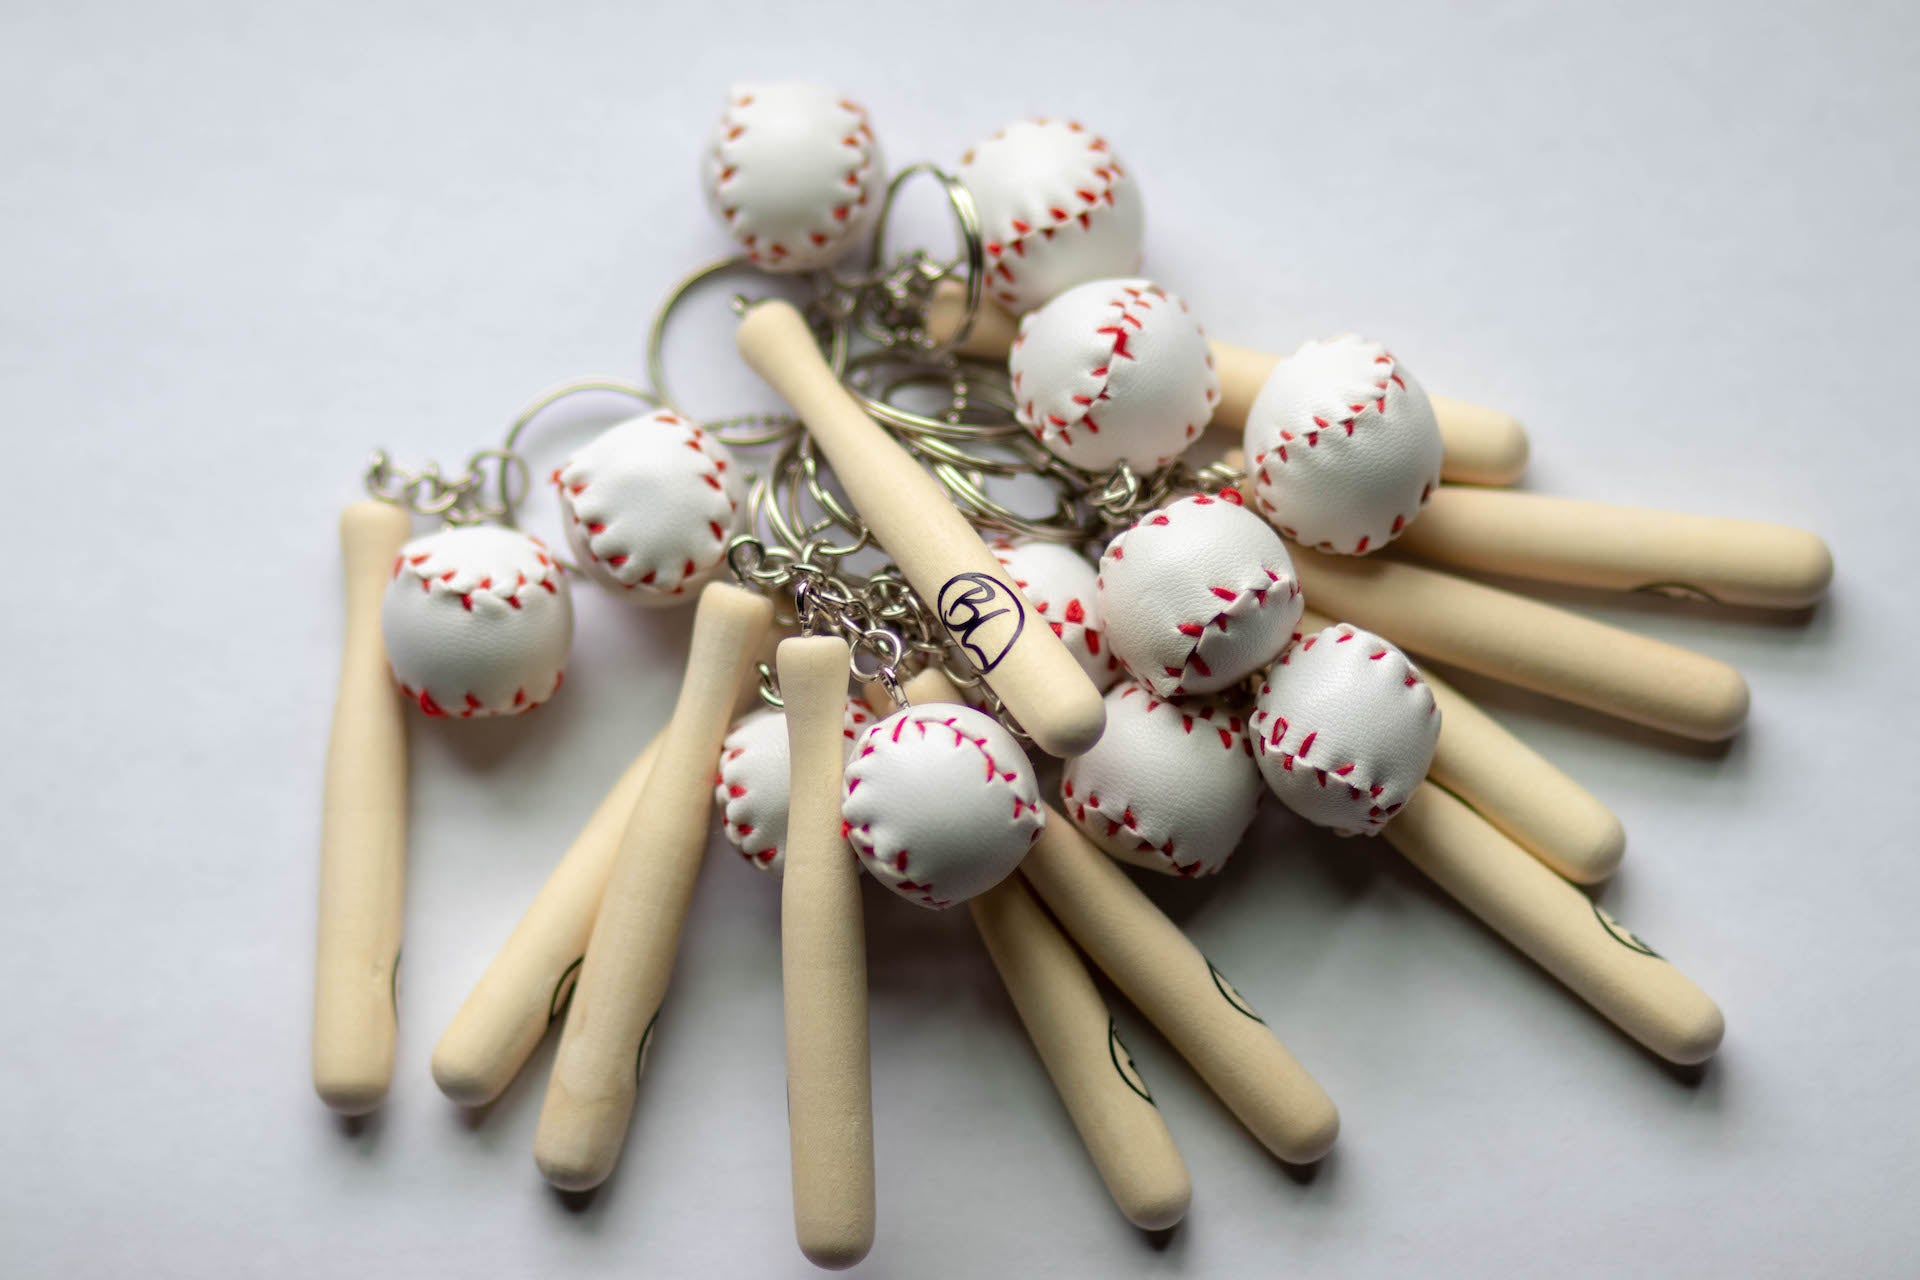 Baseball Legend Bat & Ball Keychain - Baseball Legend Apparel